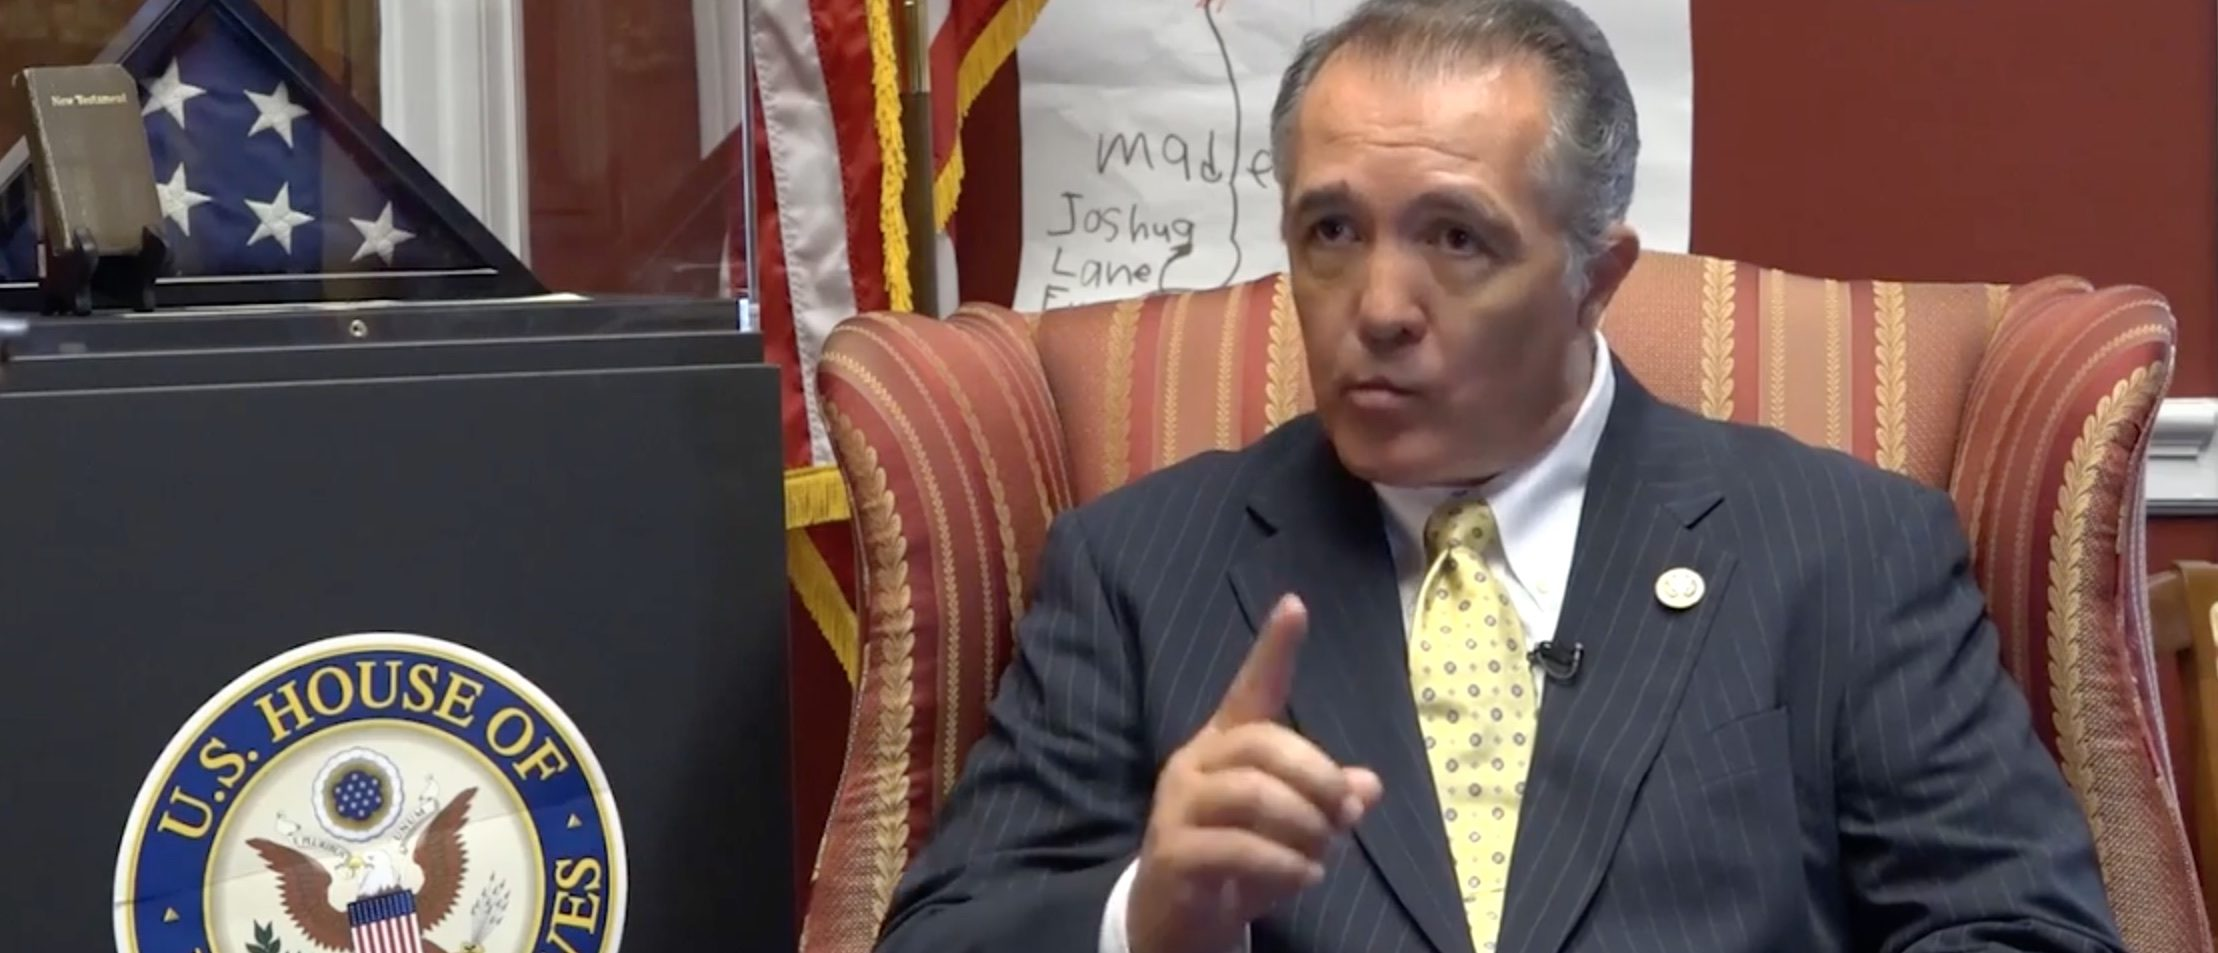 Rep. Trent Franks calls on McConnell to change filibuster rules. (TheDC)